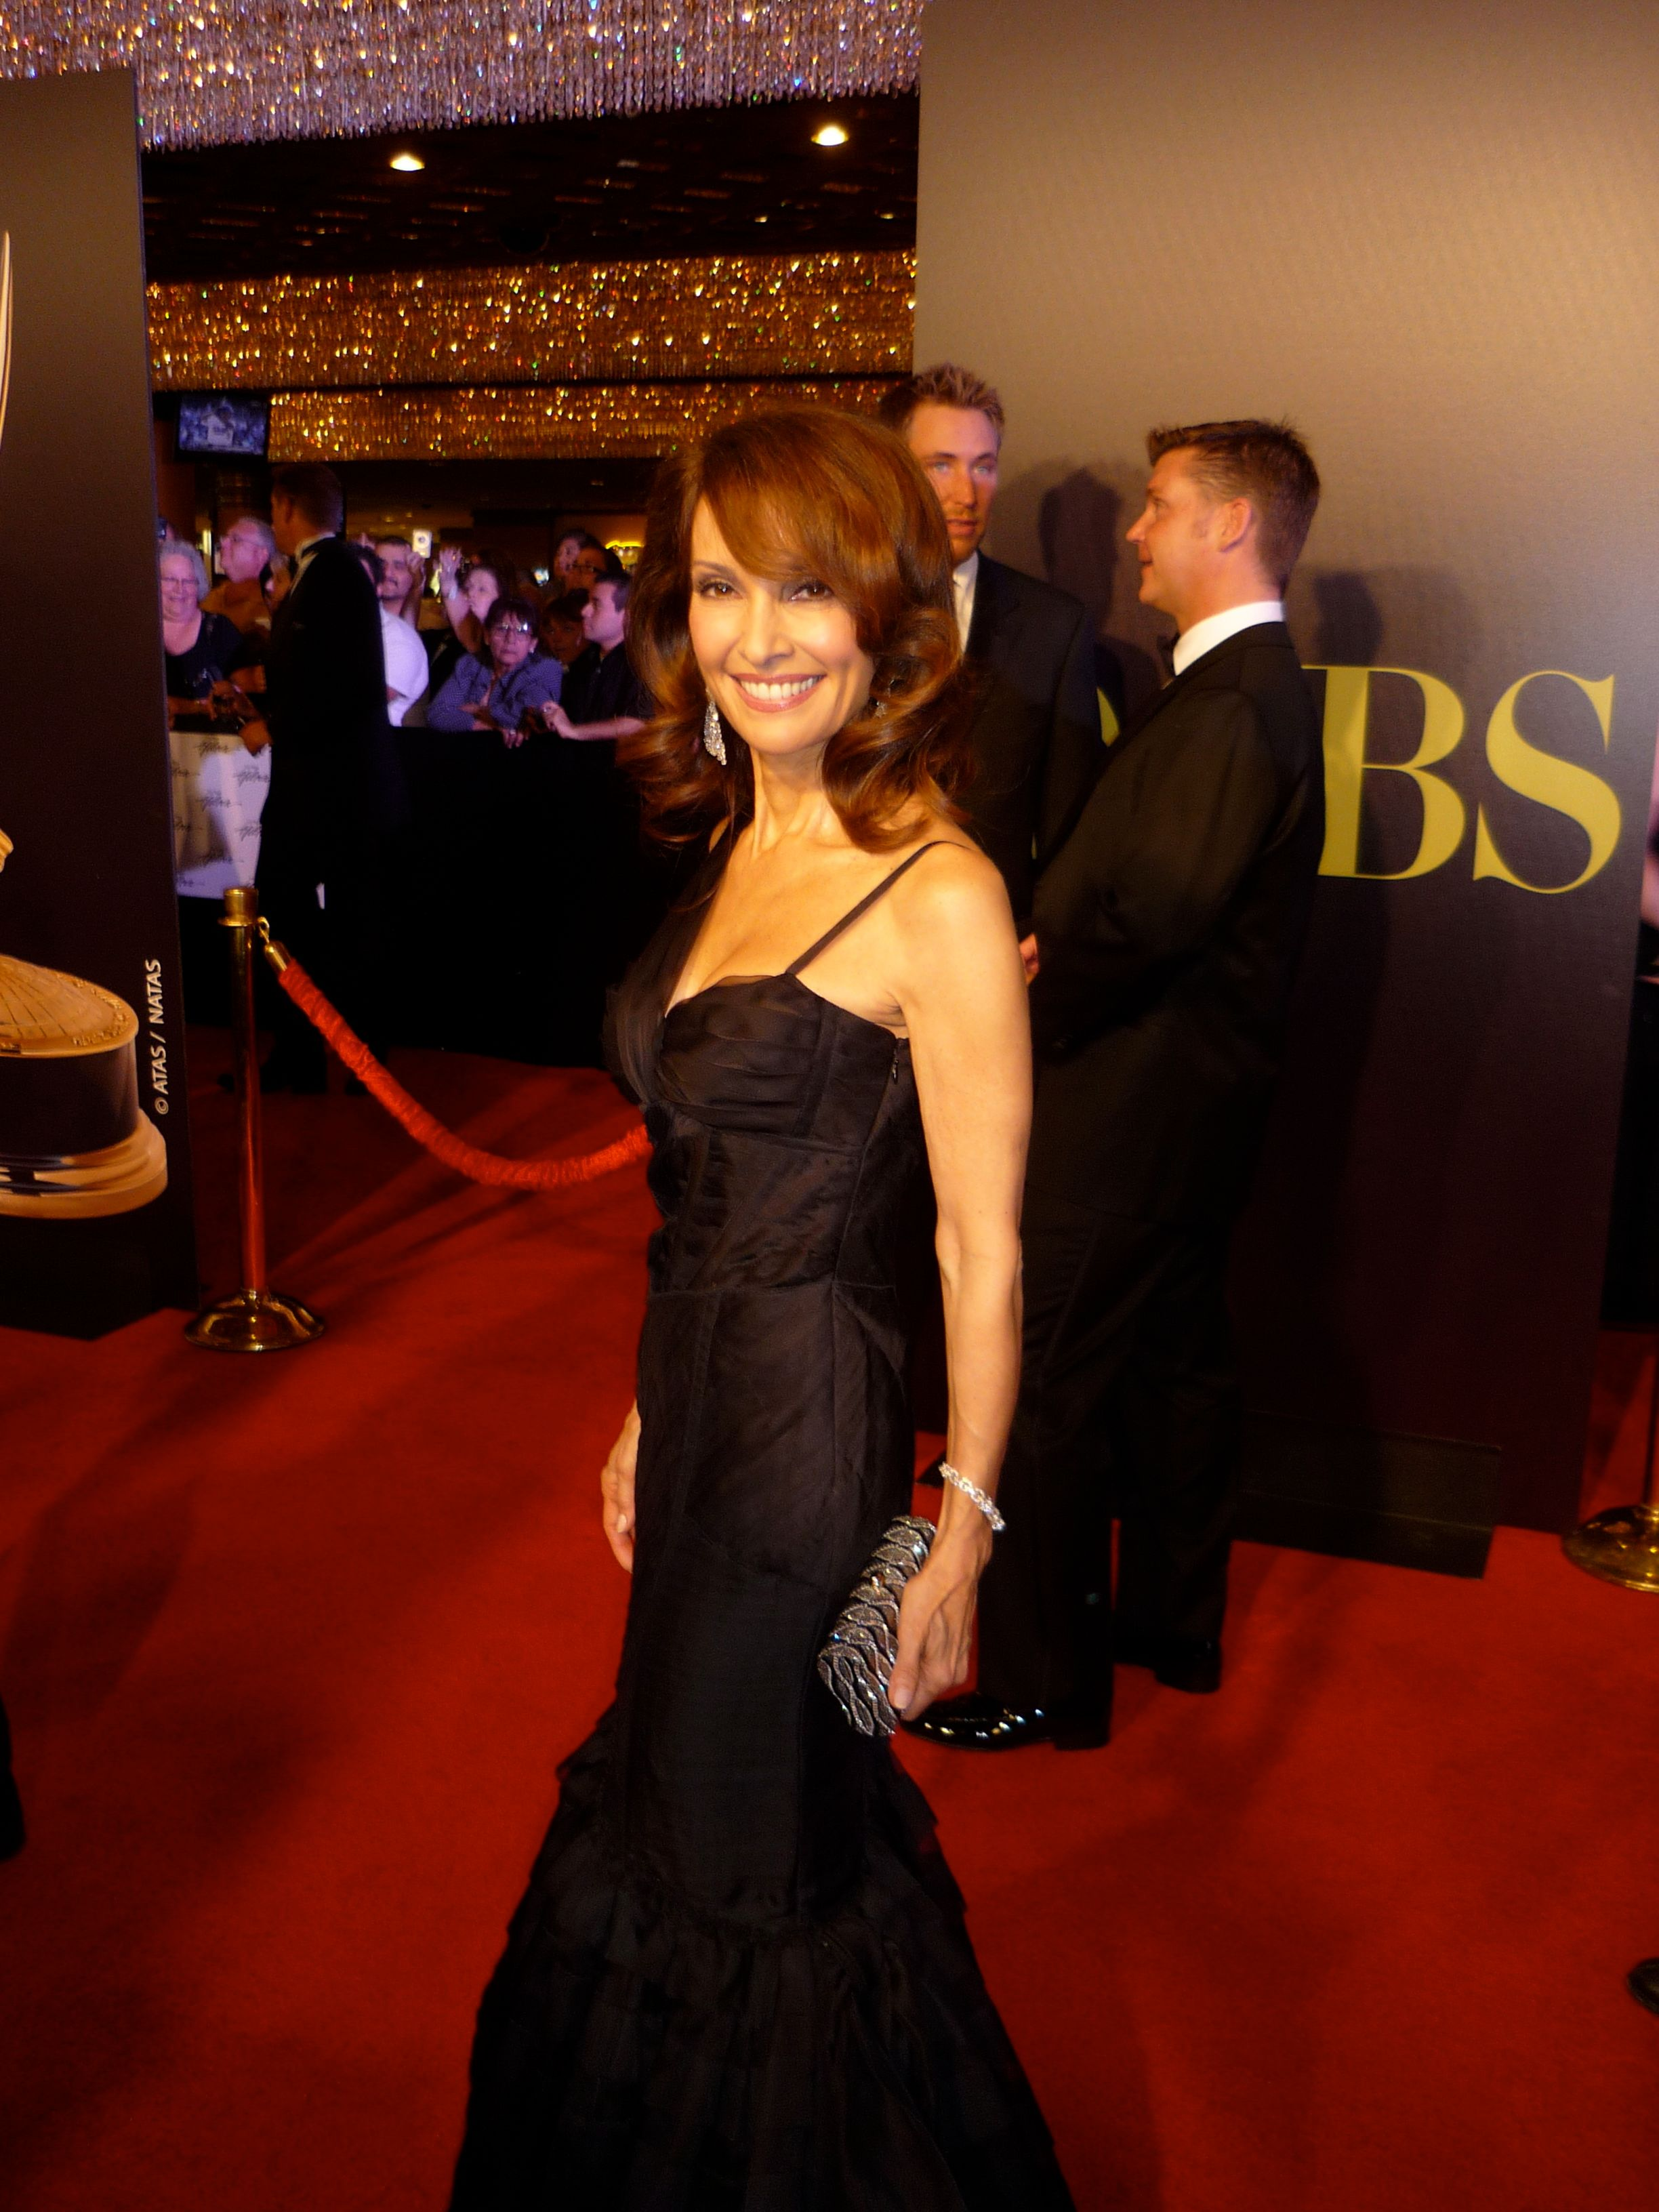 Susan Lucci at the Emmys